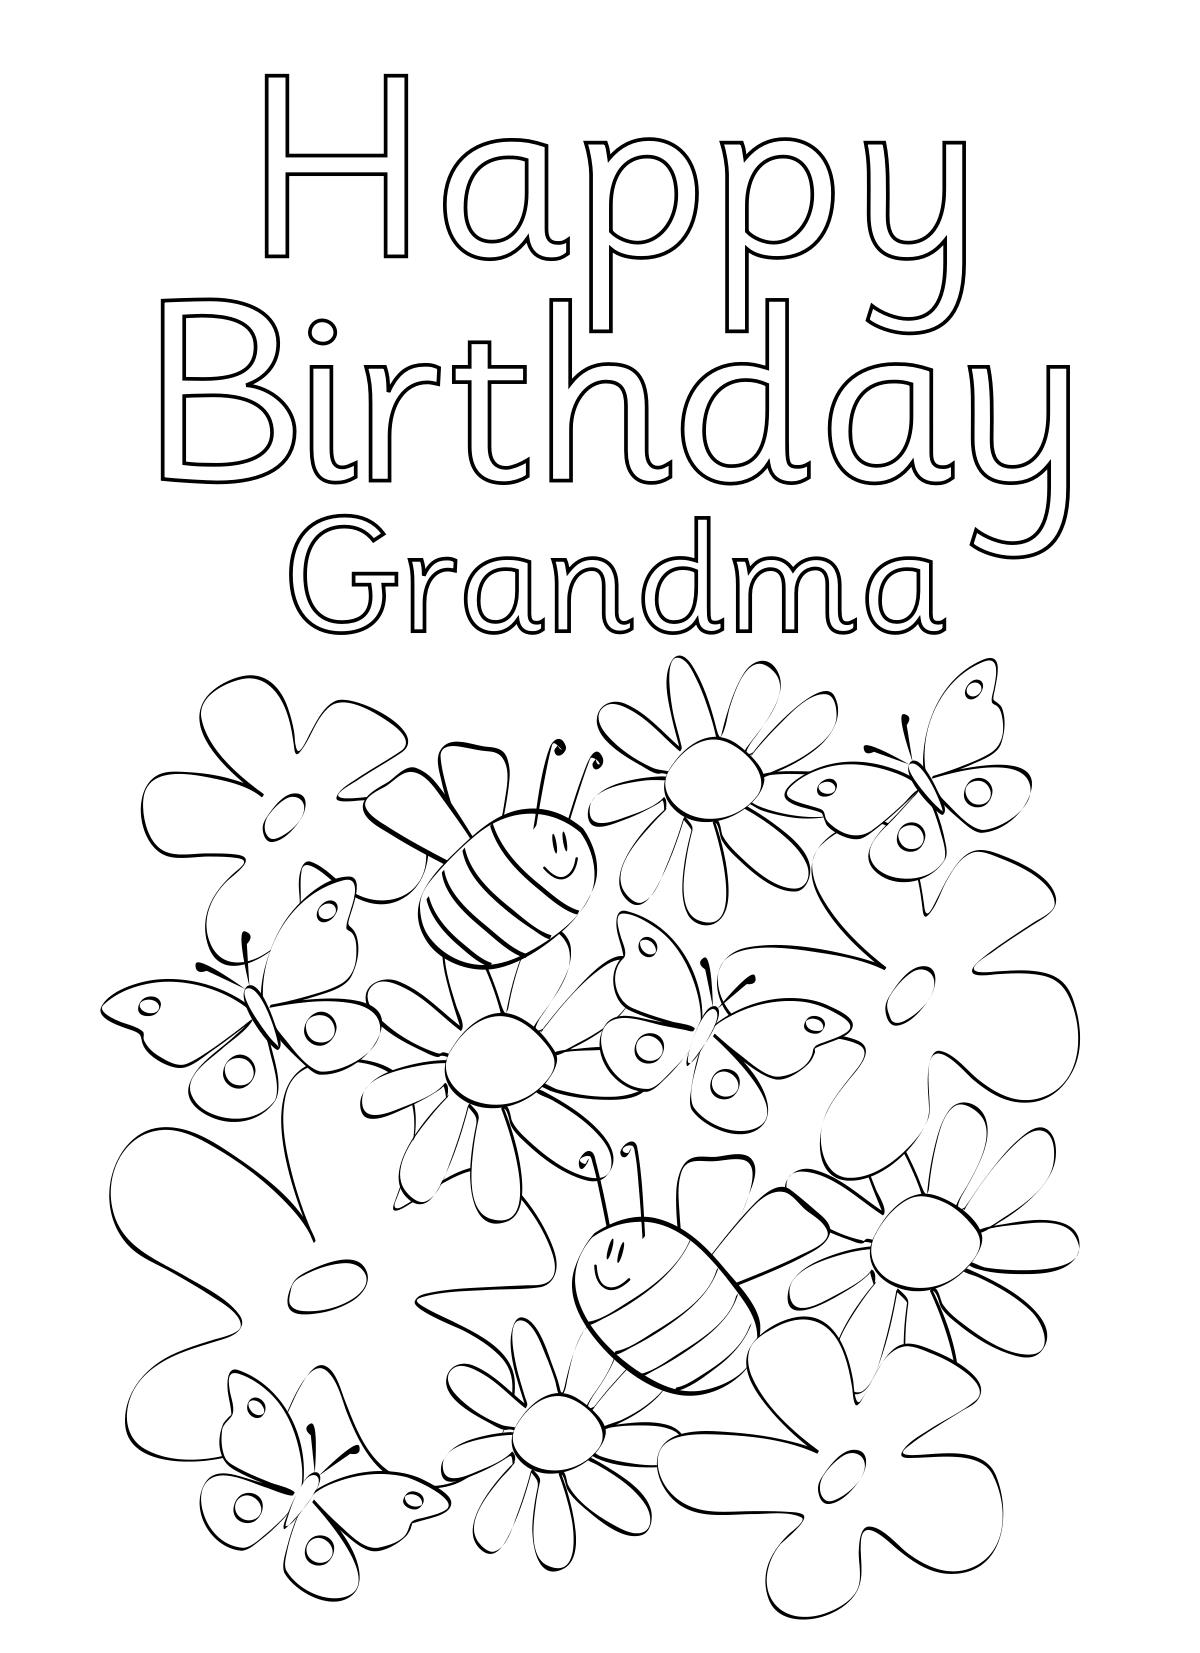 printable birthday cards to color for grandma ; printable-birthday-cards-to-color-for-grandma-happy-birthday-cards-drawing-34